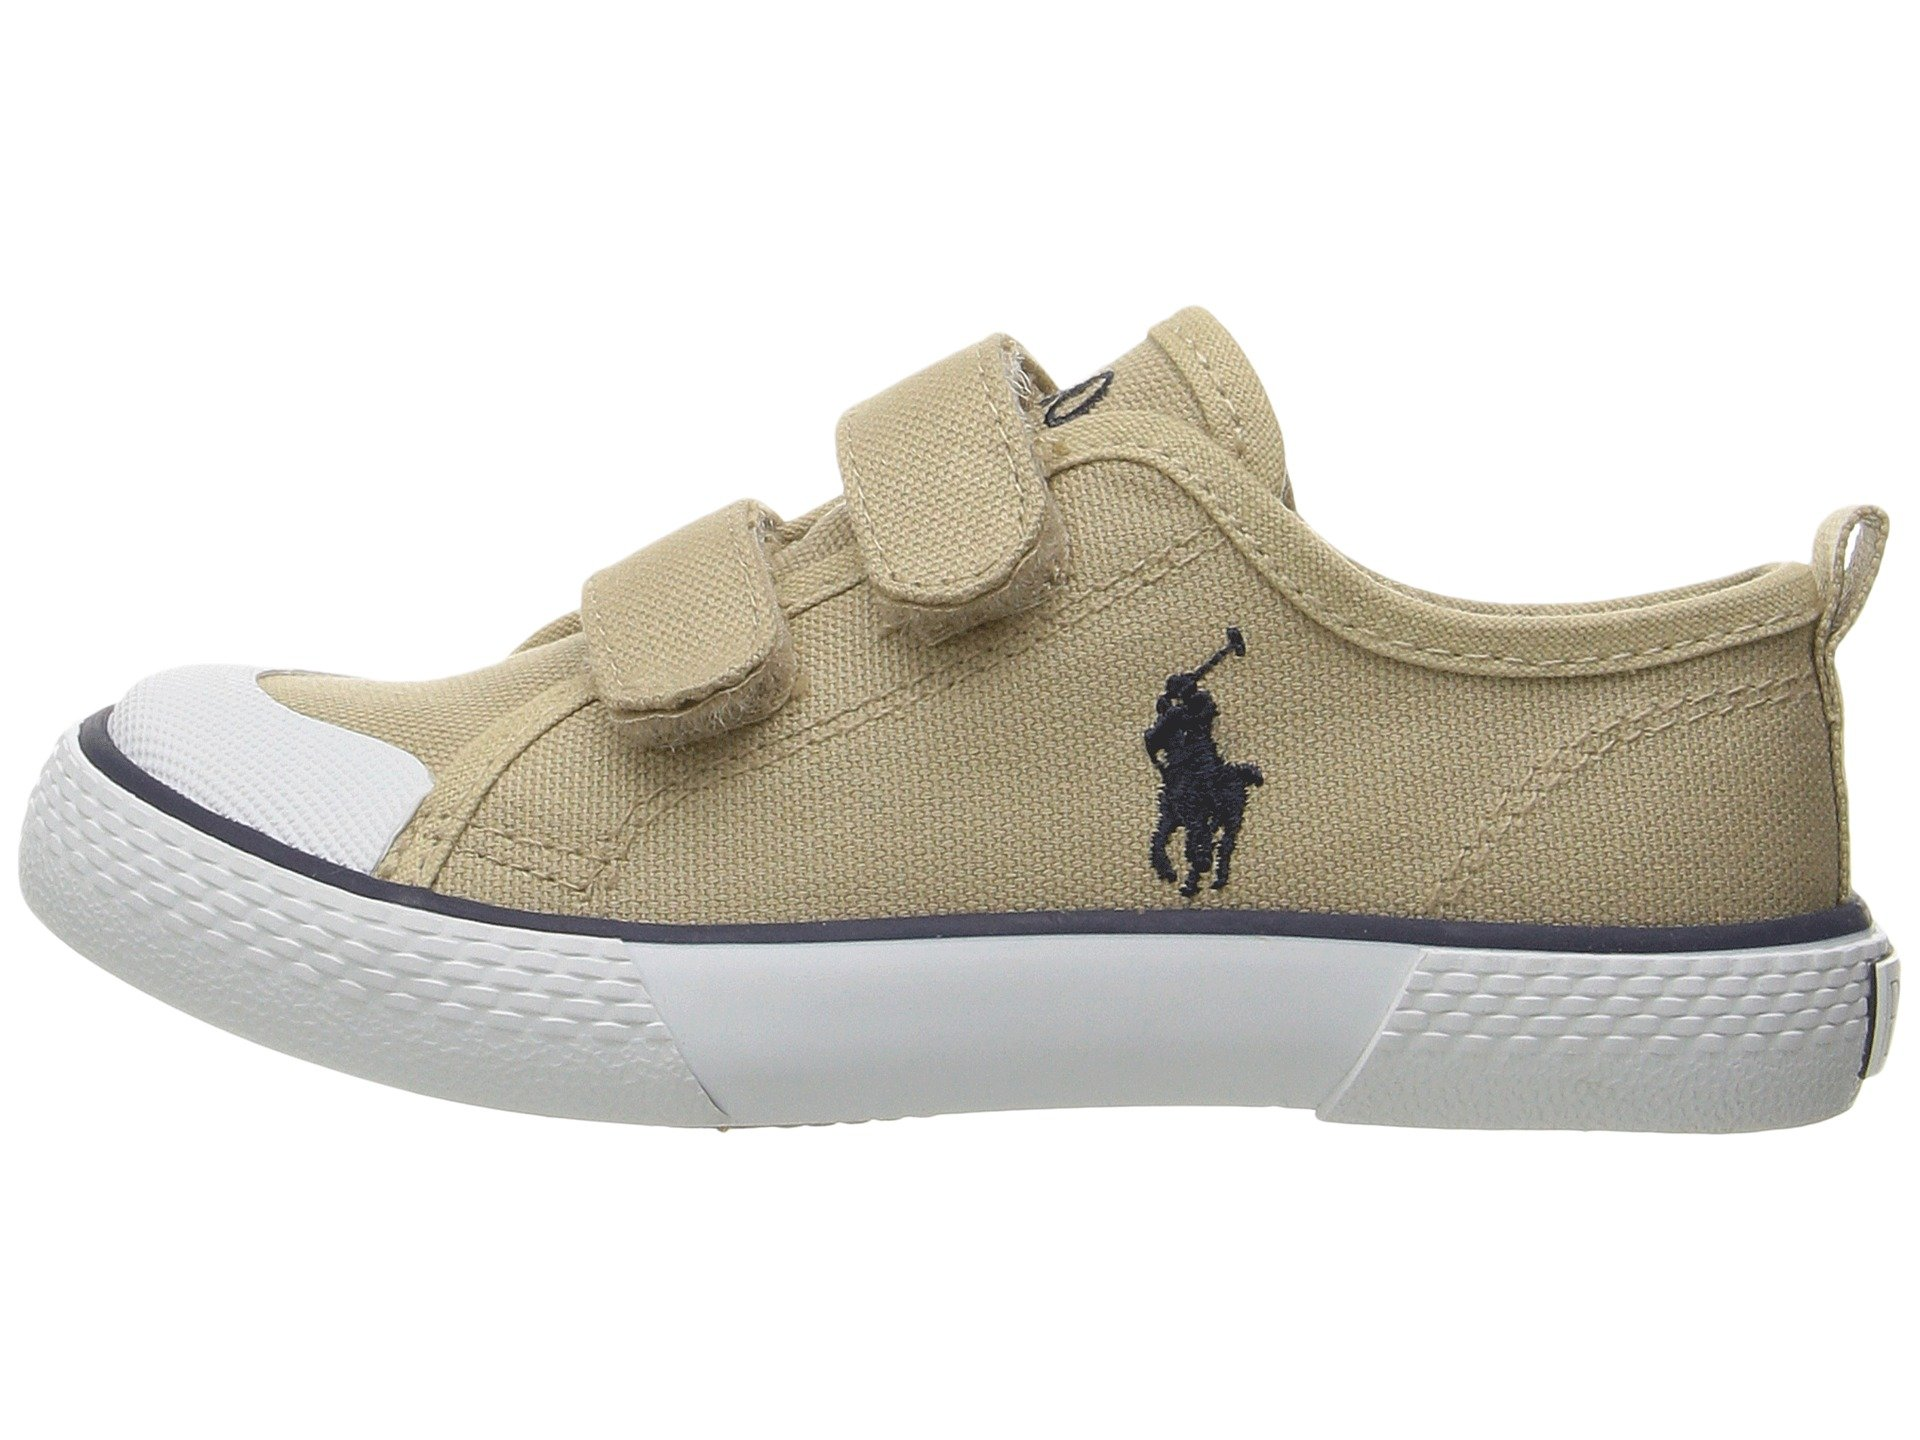 Polo ralph lauren kids camden ez toddler at 6pm for Ralph lauren kids